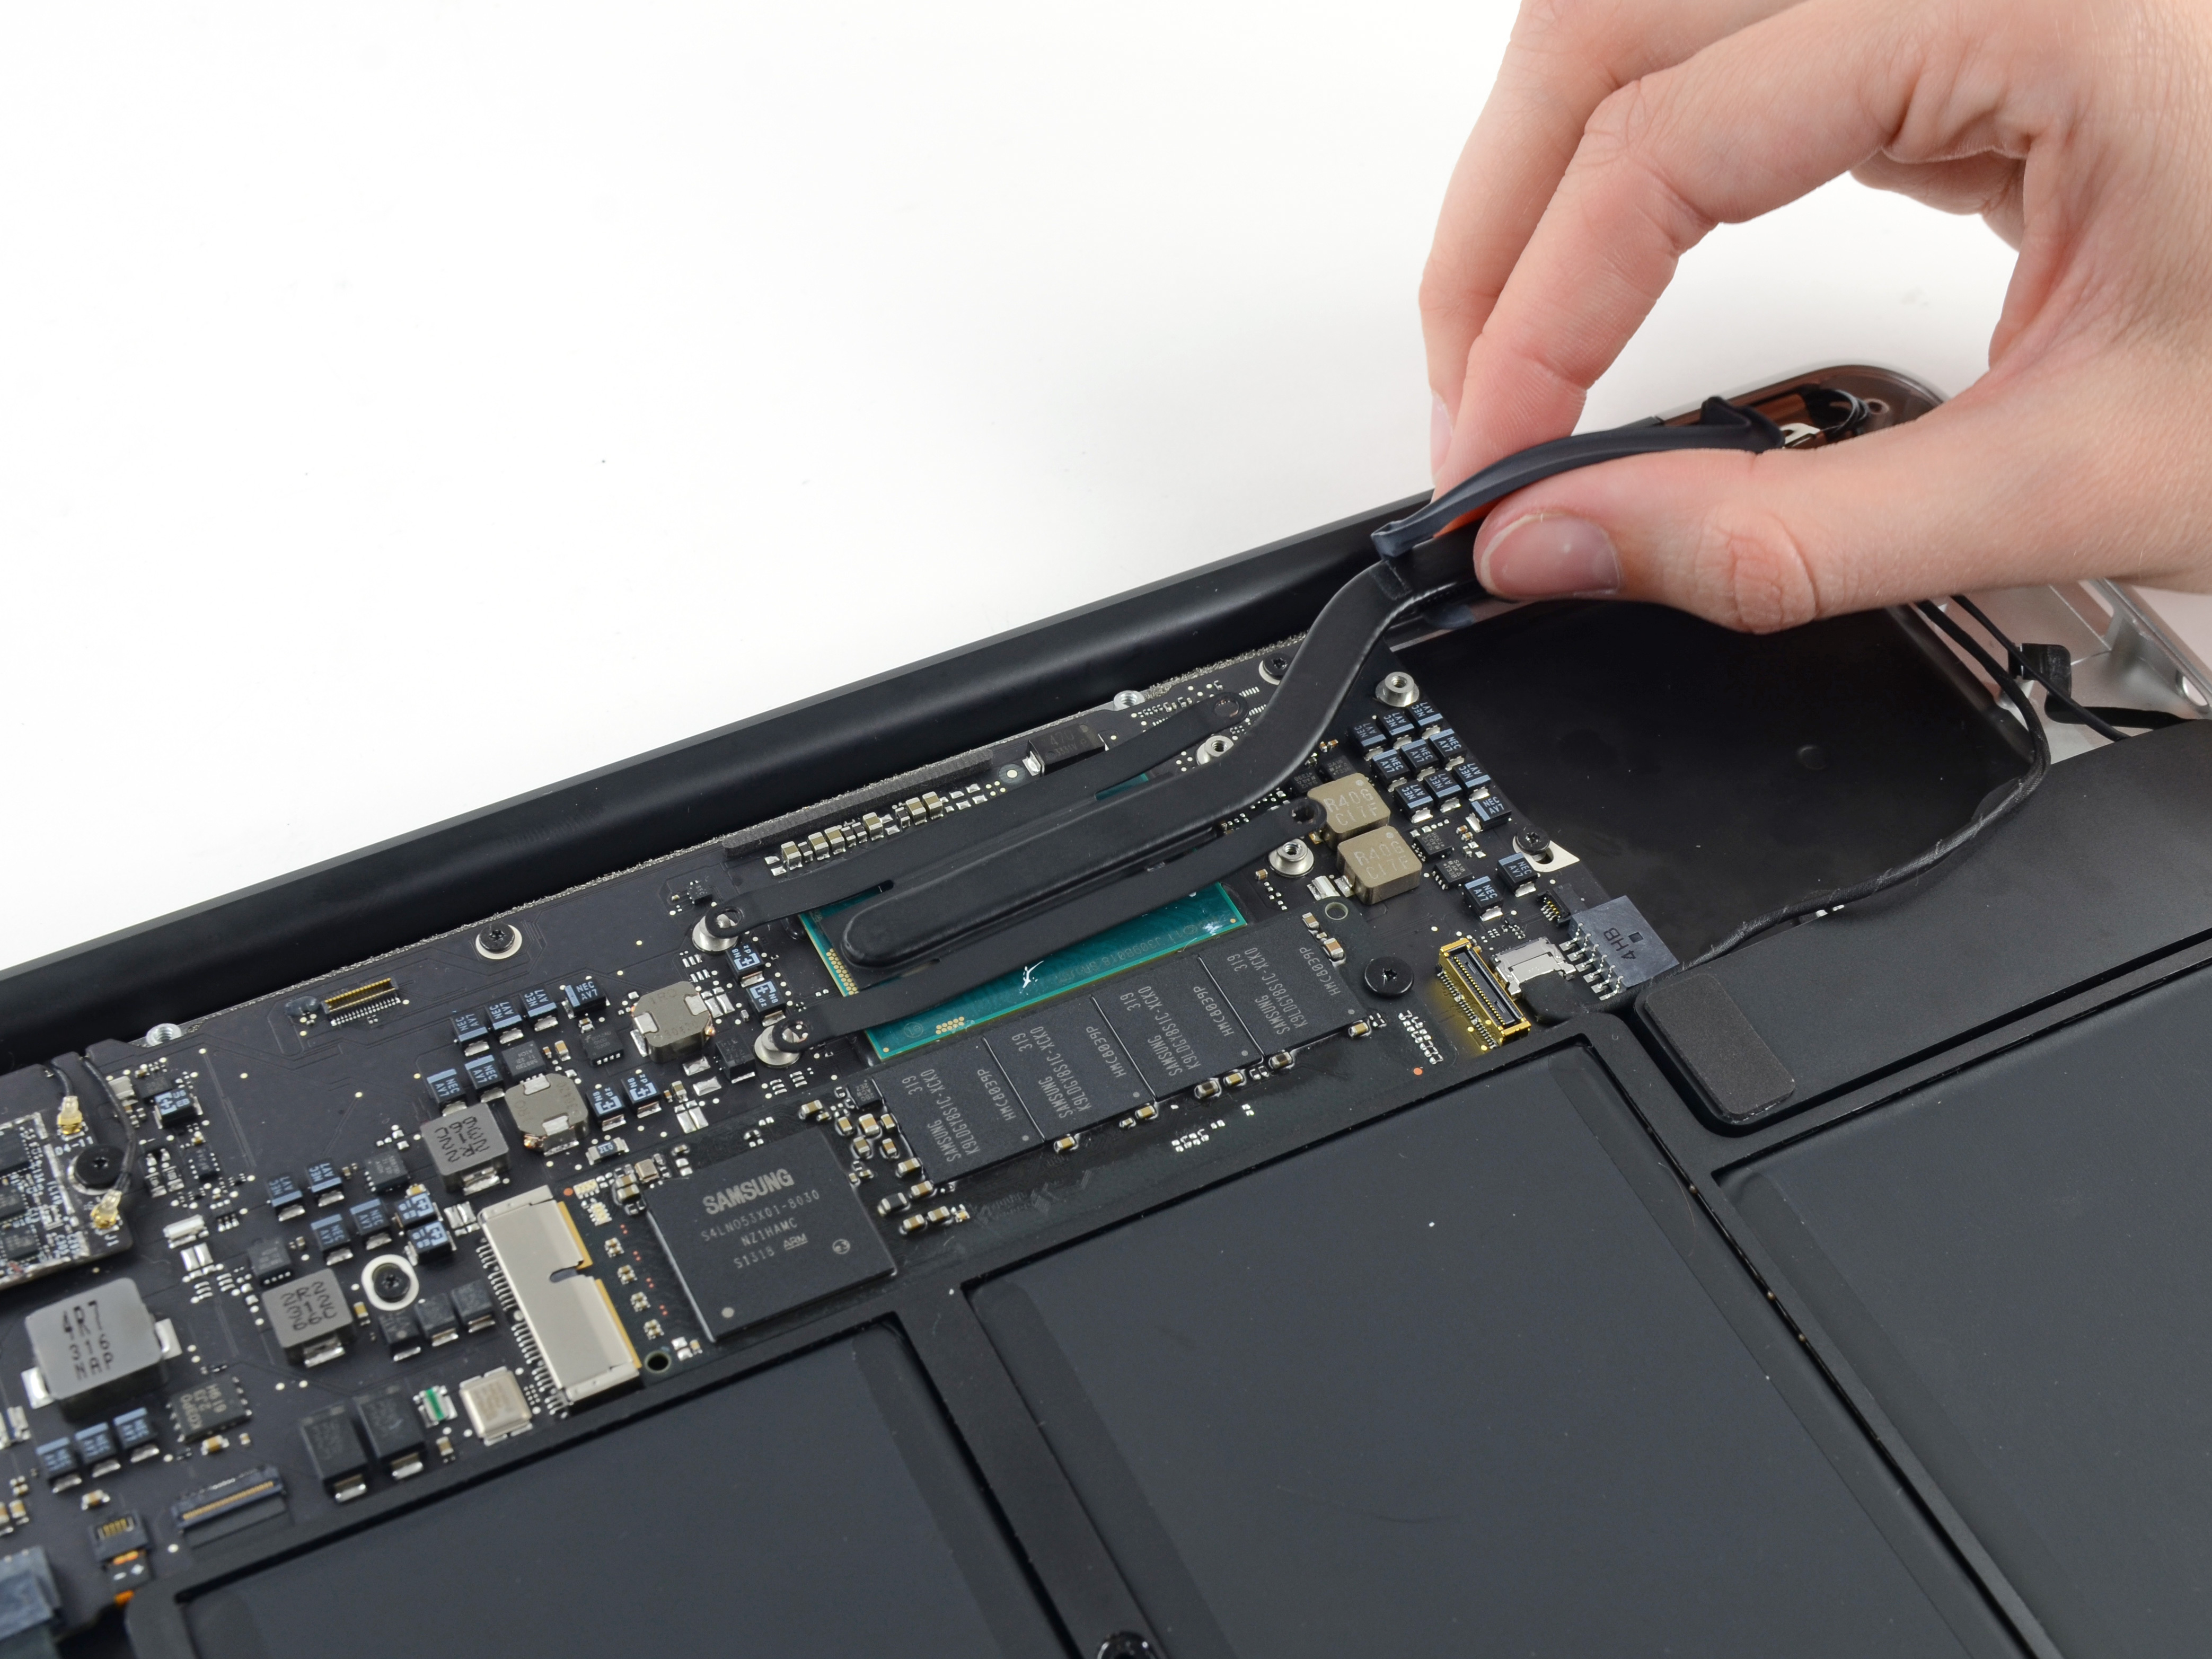 macbook air 13 early 2015 heat sink replacement ifixit repair guide rh ifixit com iFixit MacBook Air MacBook Air 2014